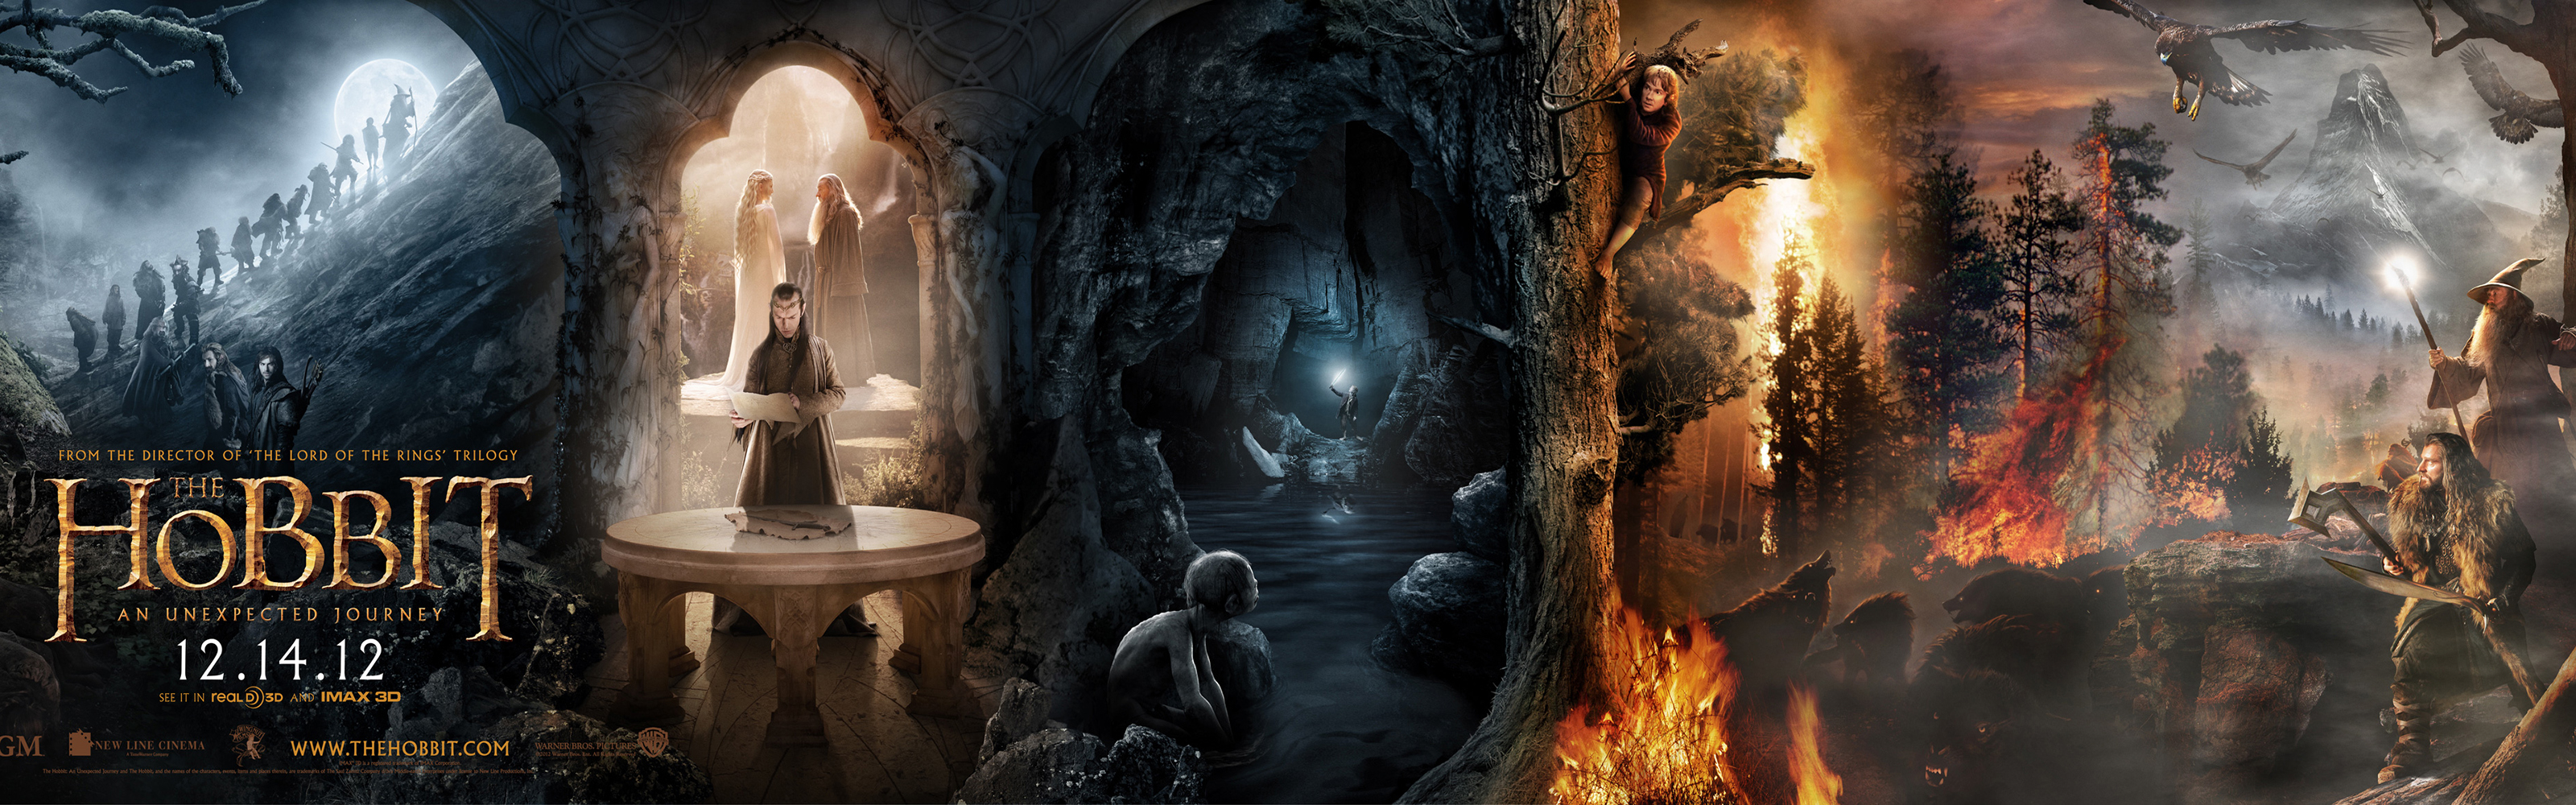 httpwwwhqwallscom201210the hobbit themes for windows 8html 3200x1000